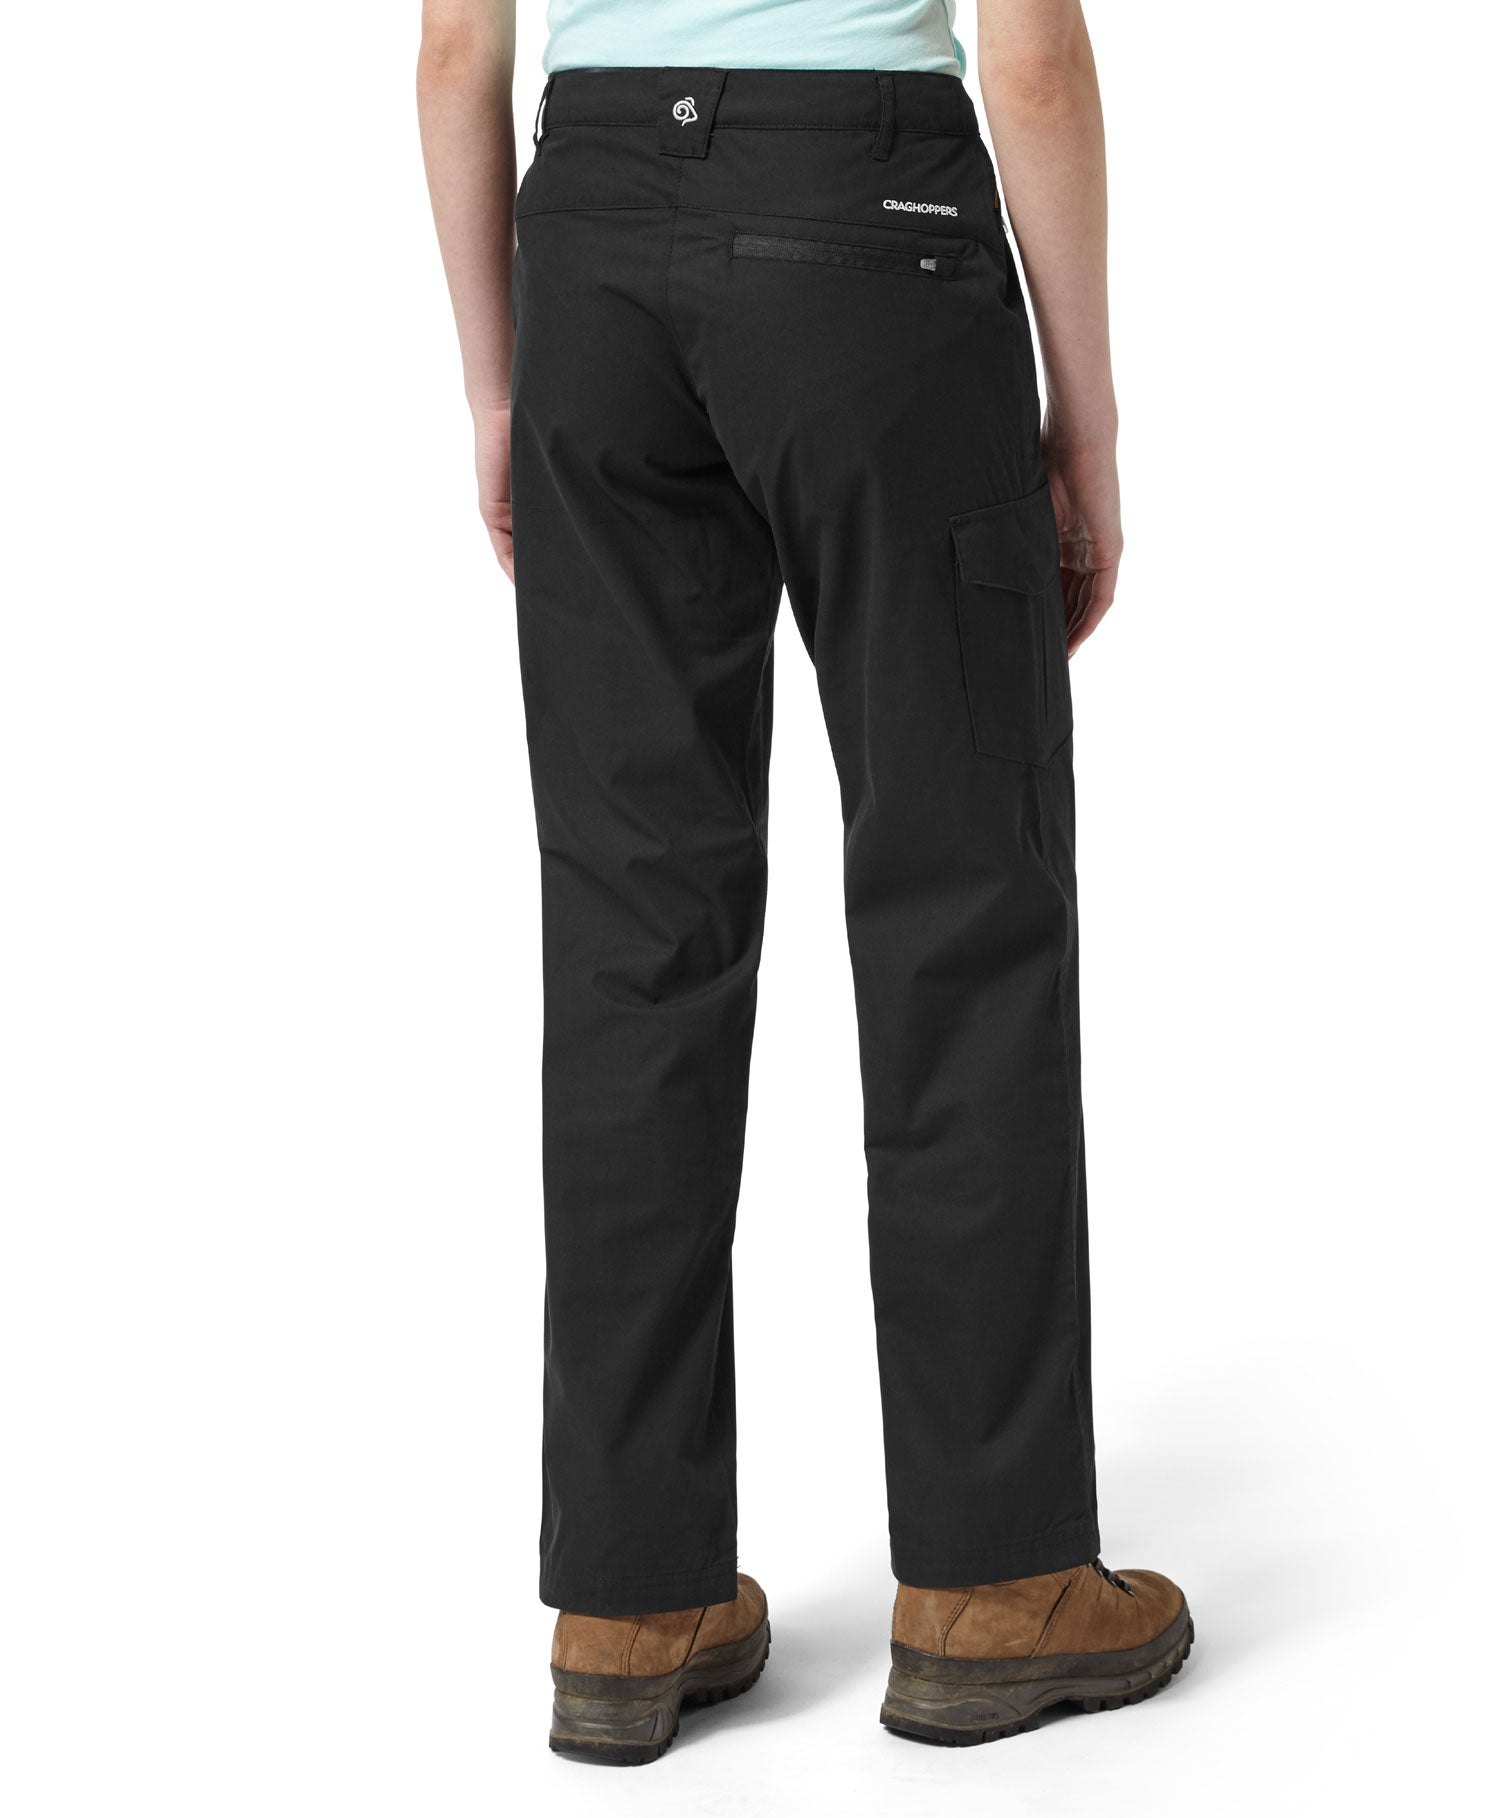 back view Ladies Traverse Trail Trousers by Craghoppers